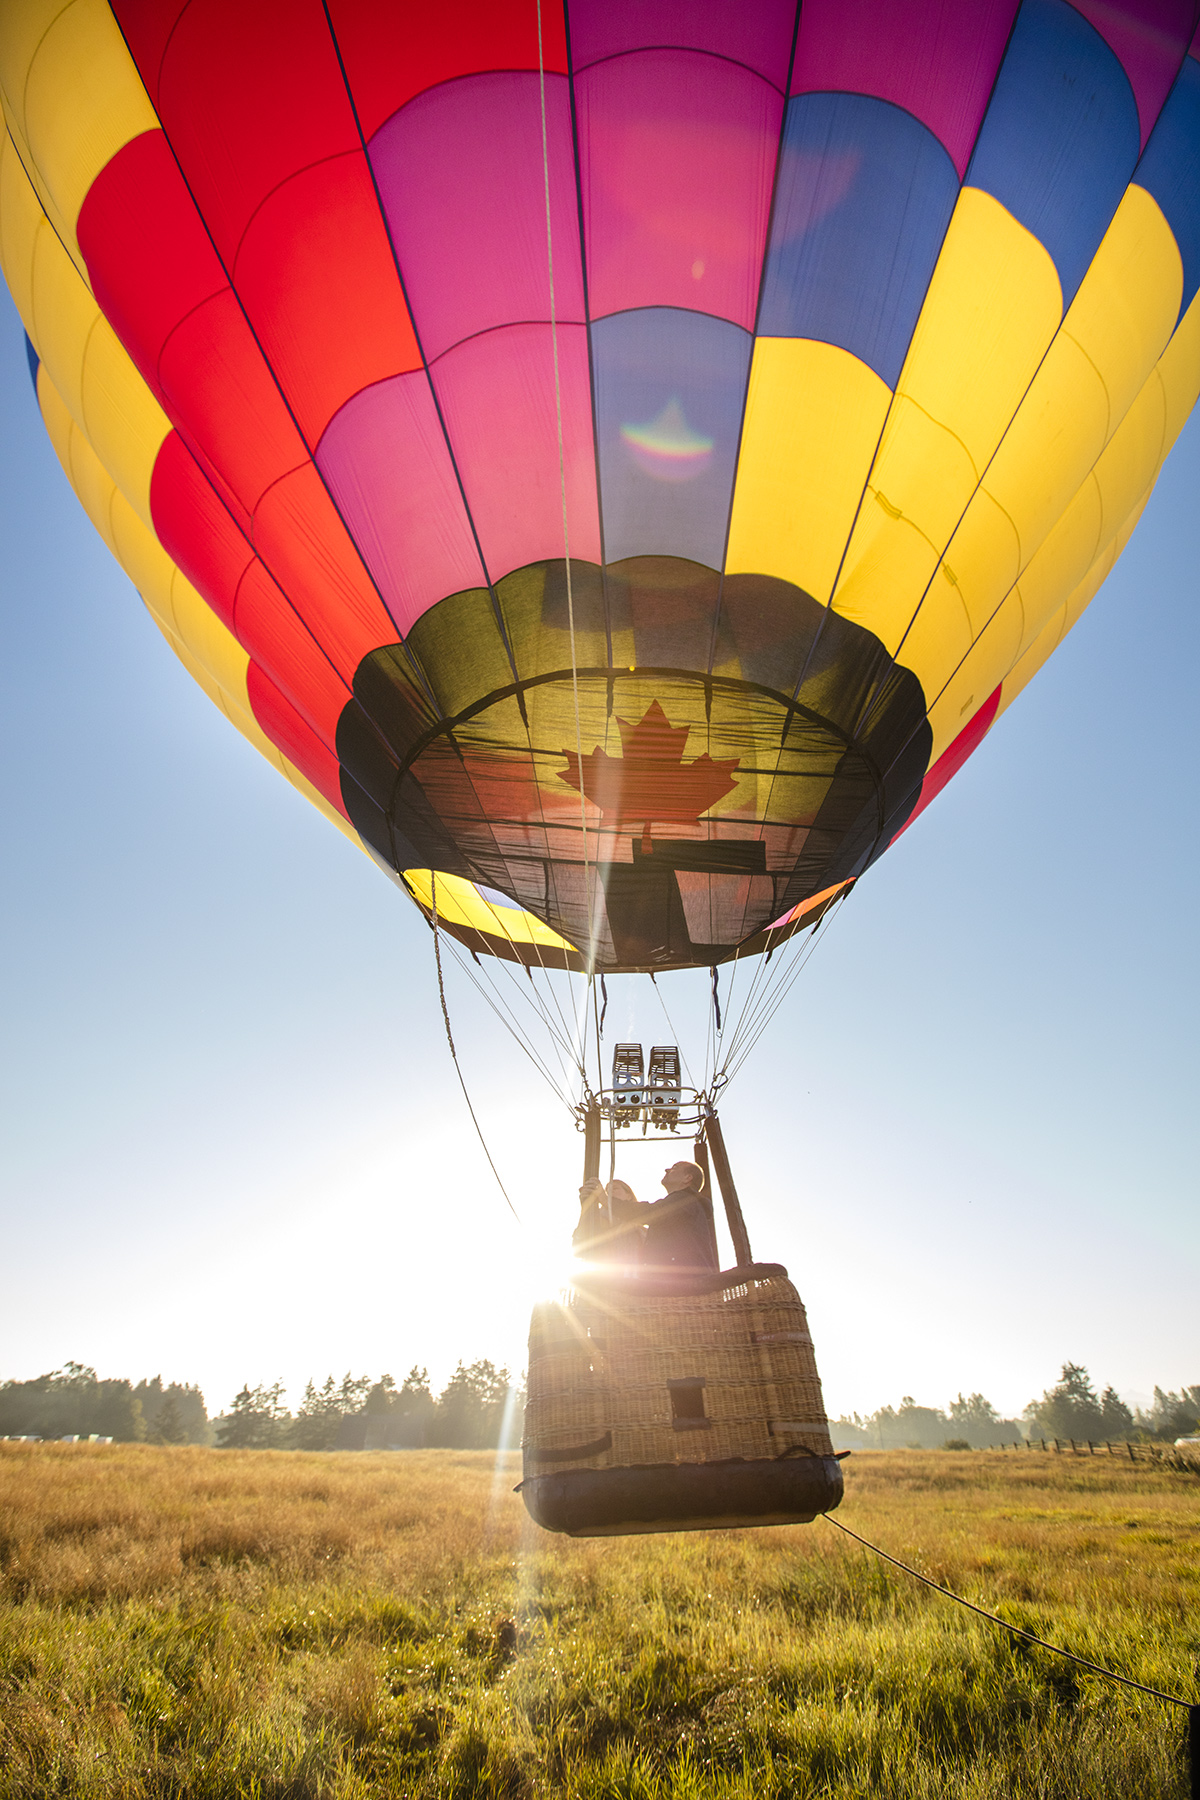 D3_Hot_Air_Balloon_16346